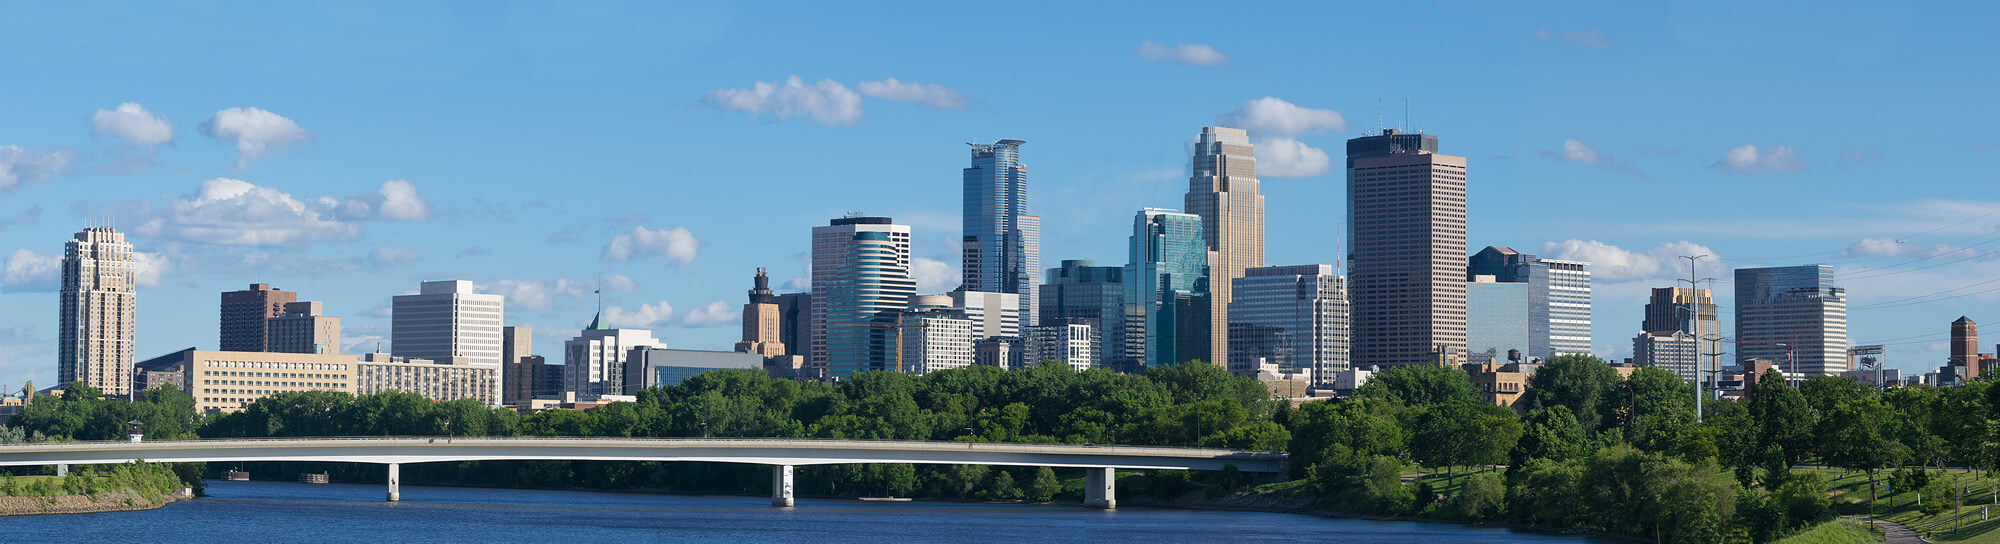 Mississippi River Minneapolis Skylines